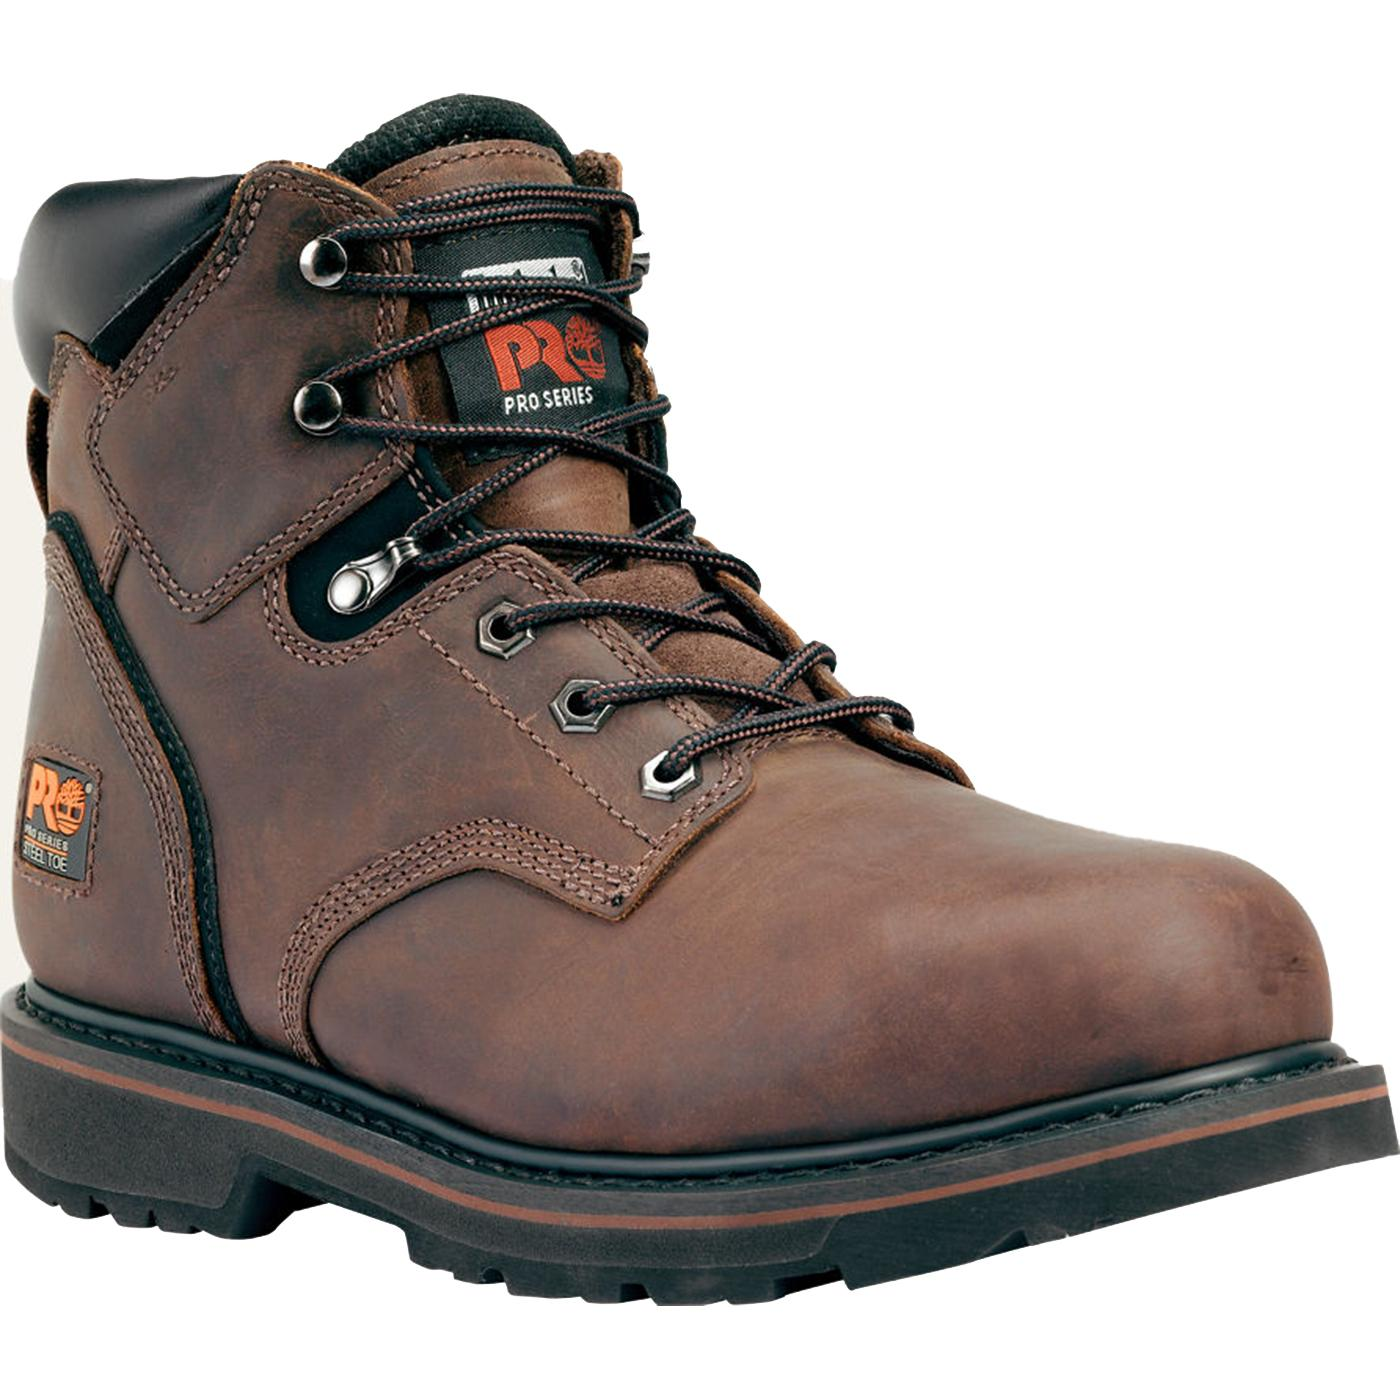 Used Timberland pro series steel toe work boots for sale in